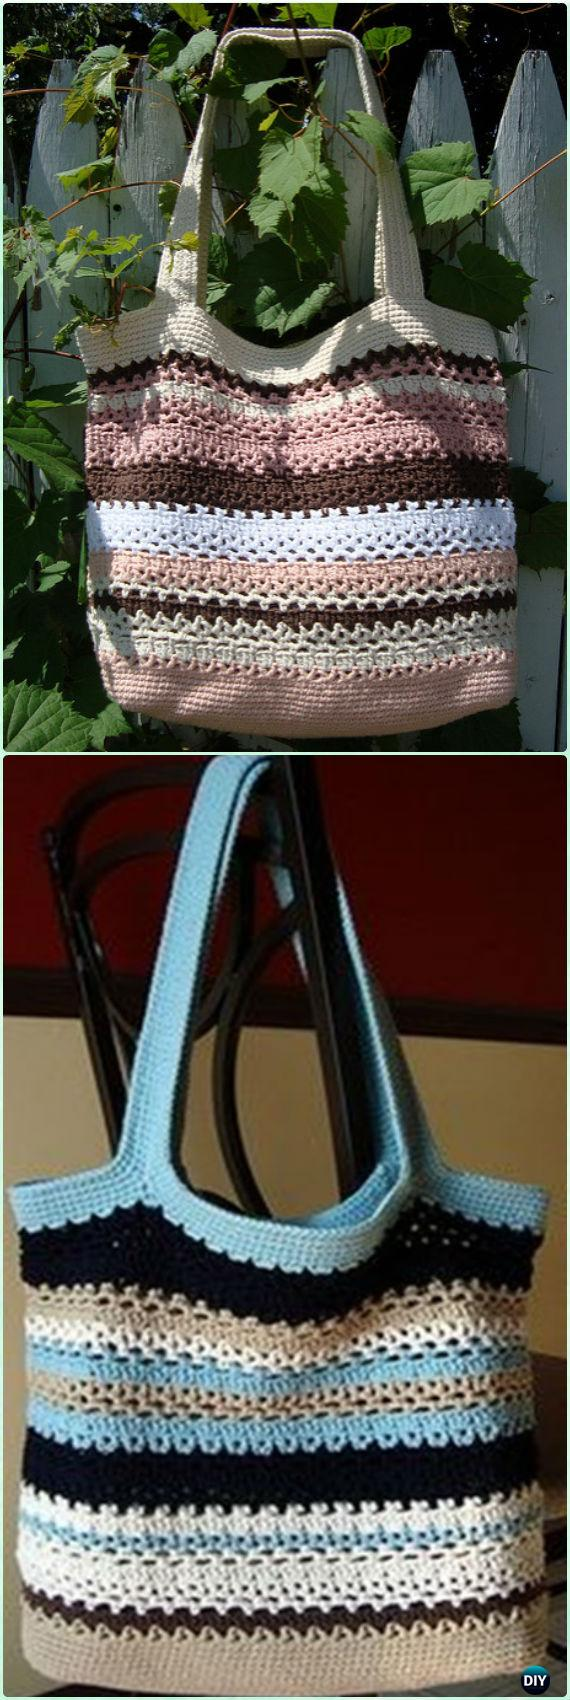 Magnificent Crochet Shopping Bag Pattern Free Collection - Easy ...